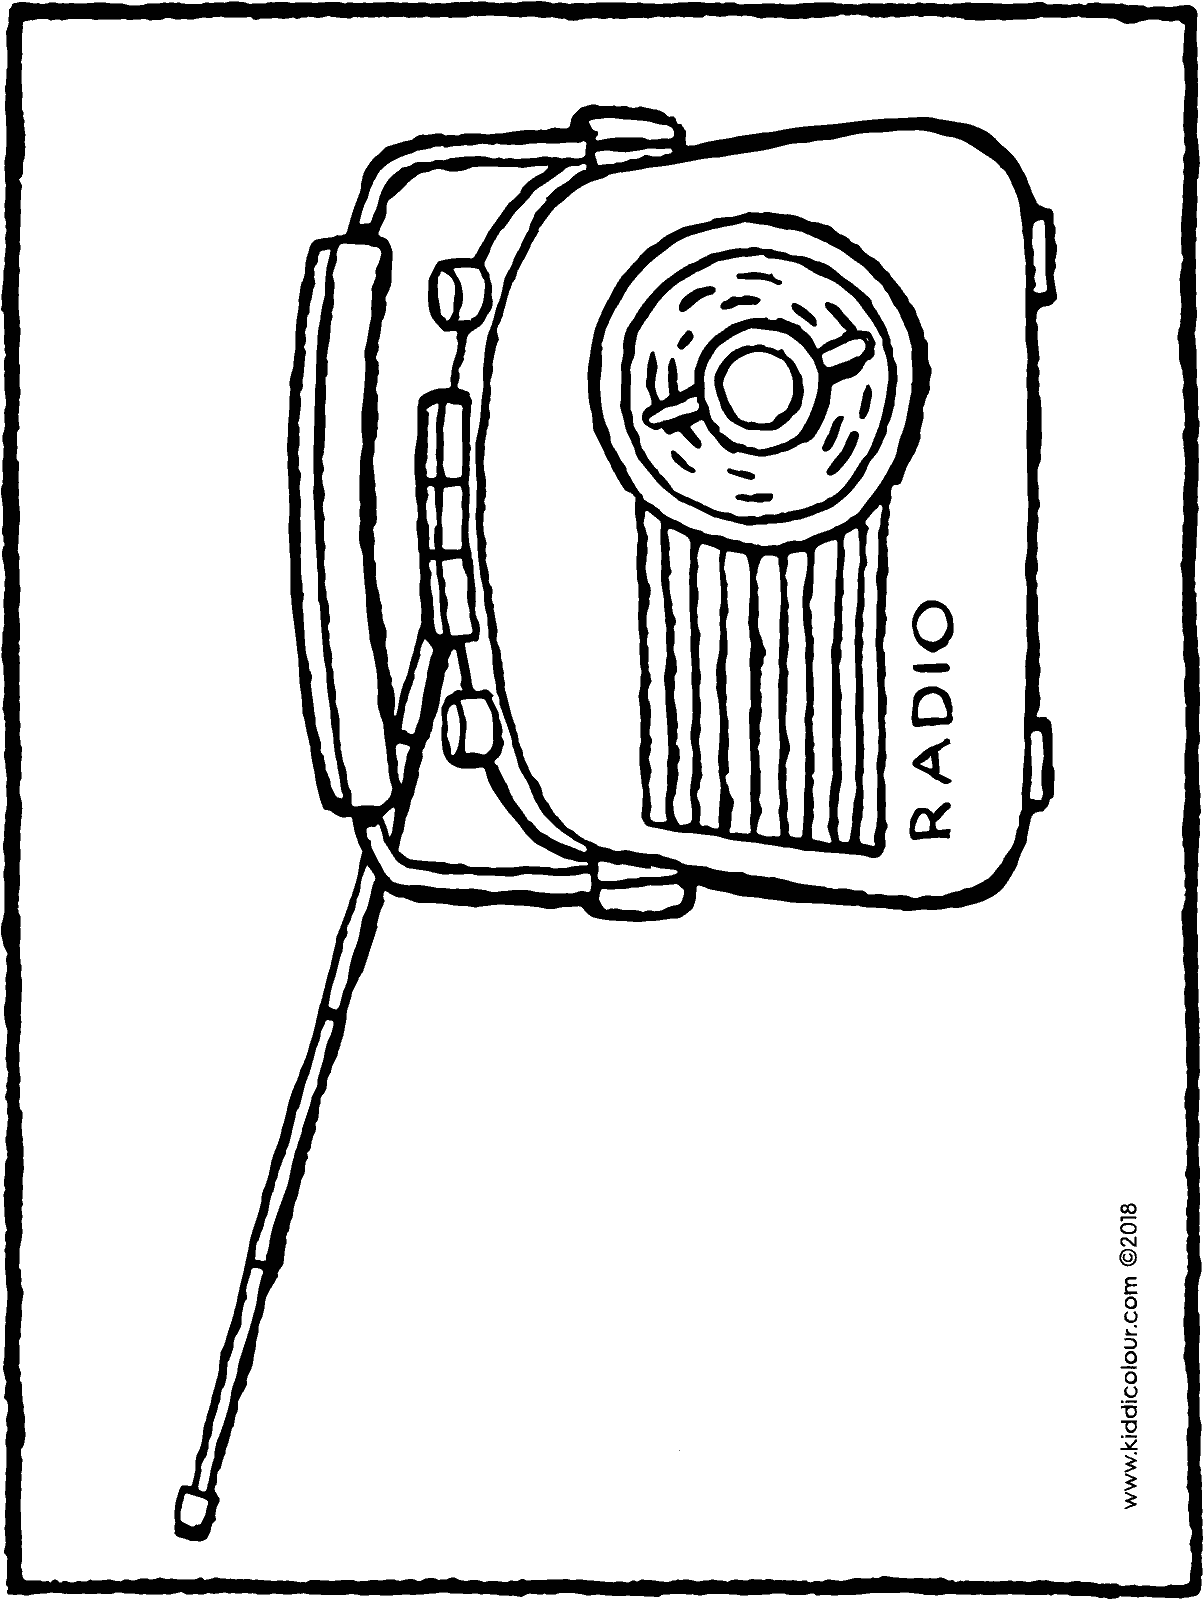 radio colouring page drawing picture 01H